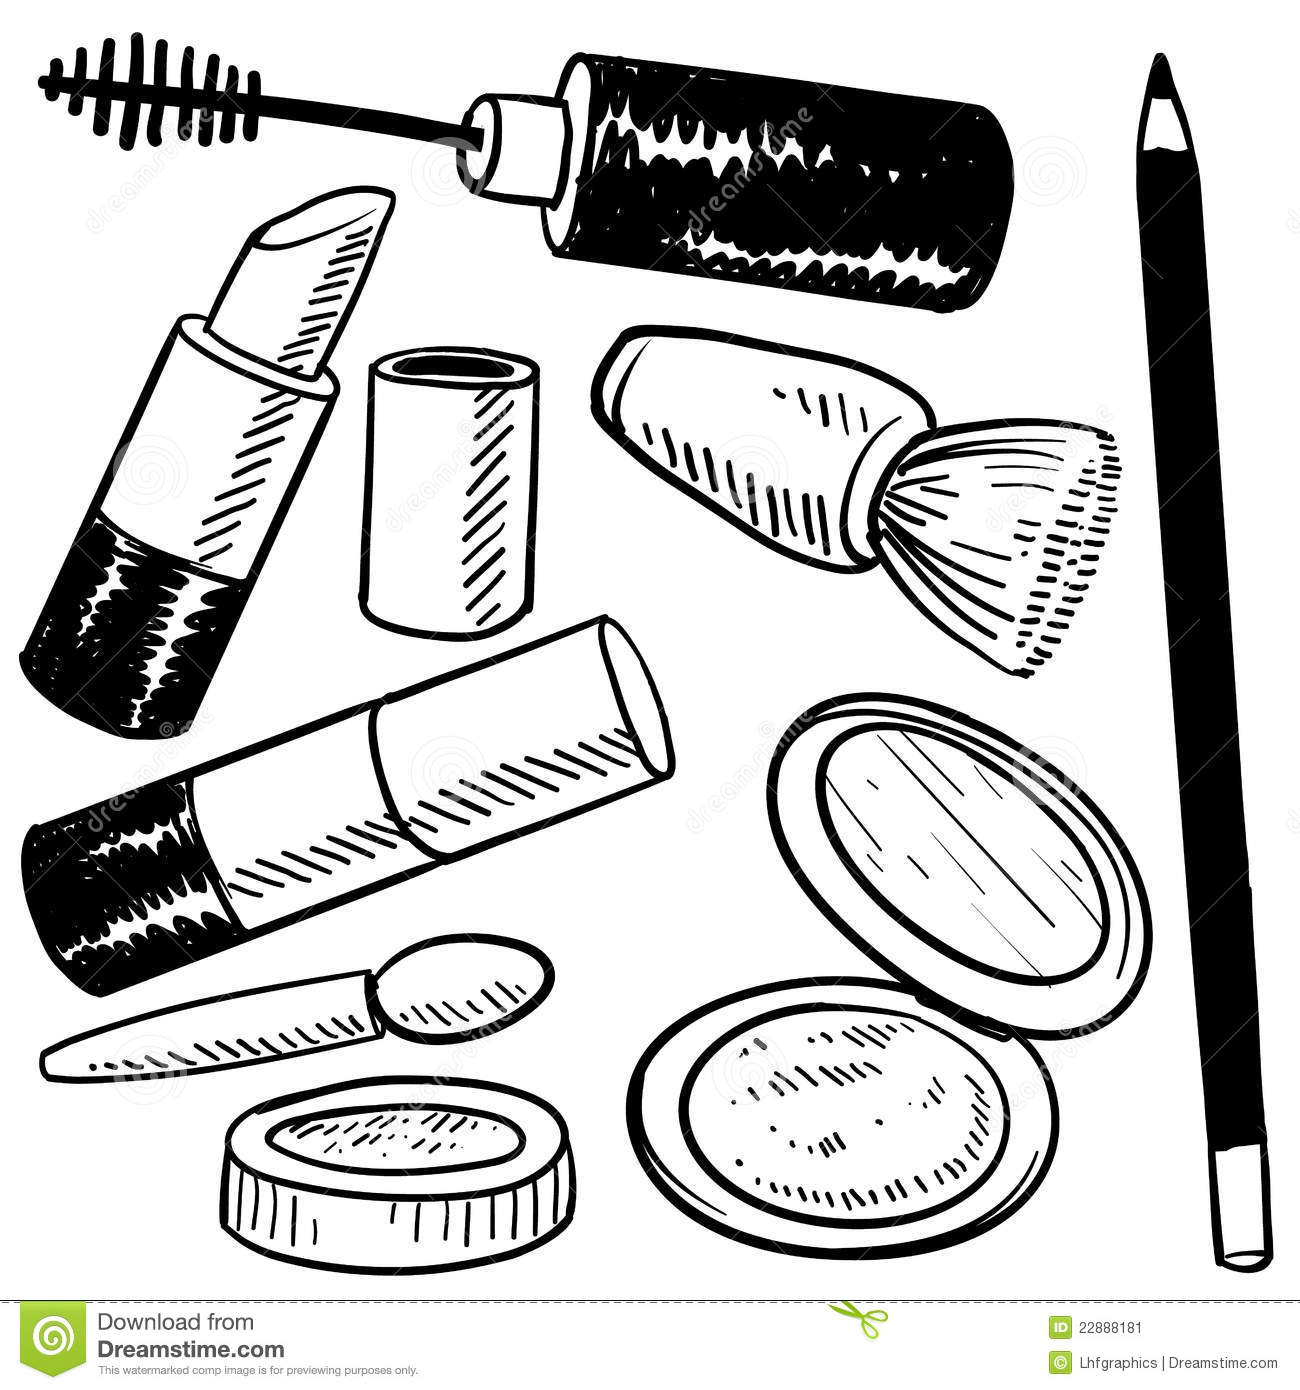 Makeup Compact Clipart Black And White Makeup Compact Clip Art Black